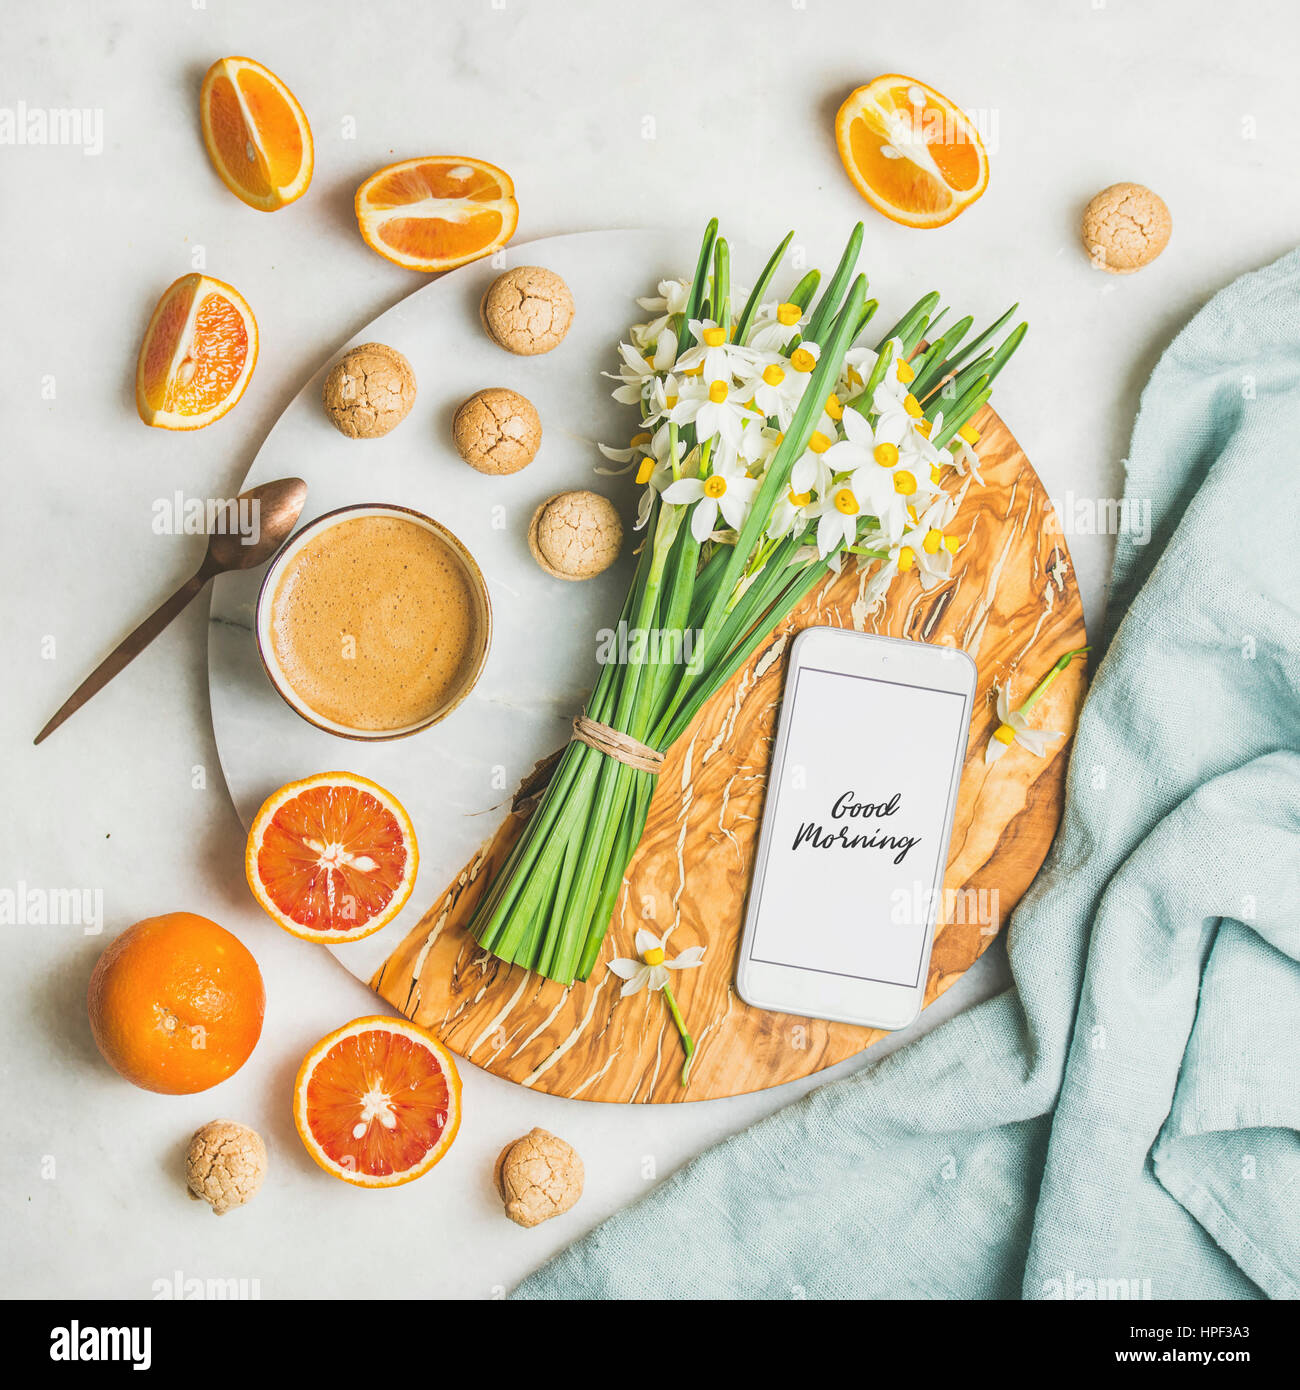 Cup of morning coffee, cookies, red oranges and bucket of spring flowers and mobile phone with text Good morning - Stock Image